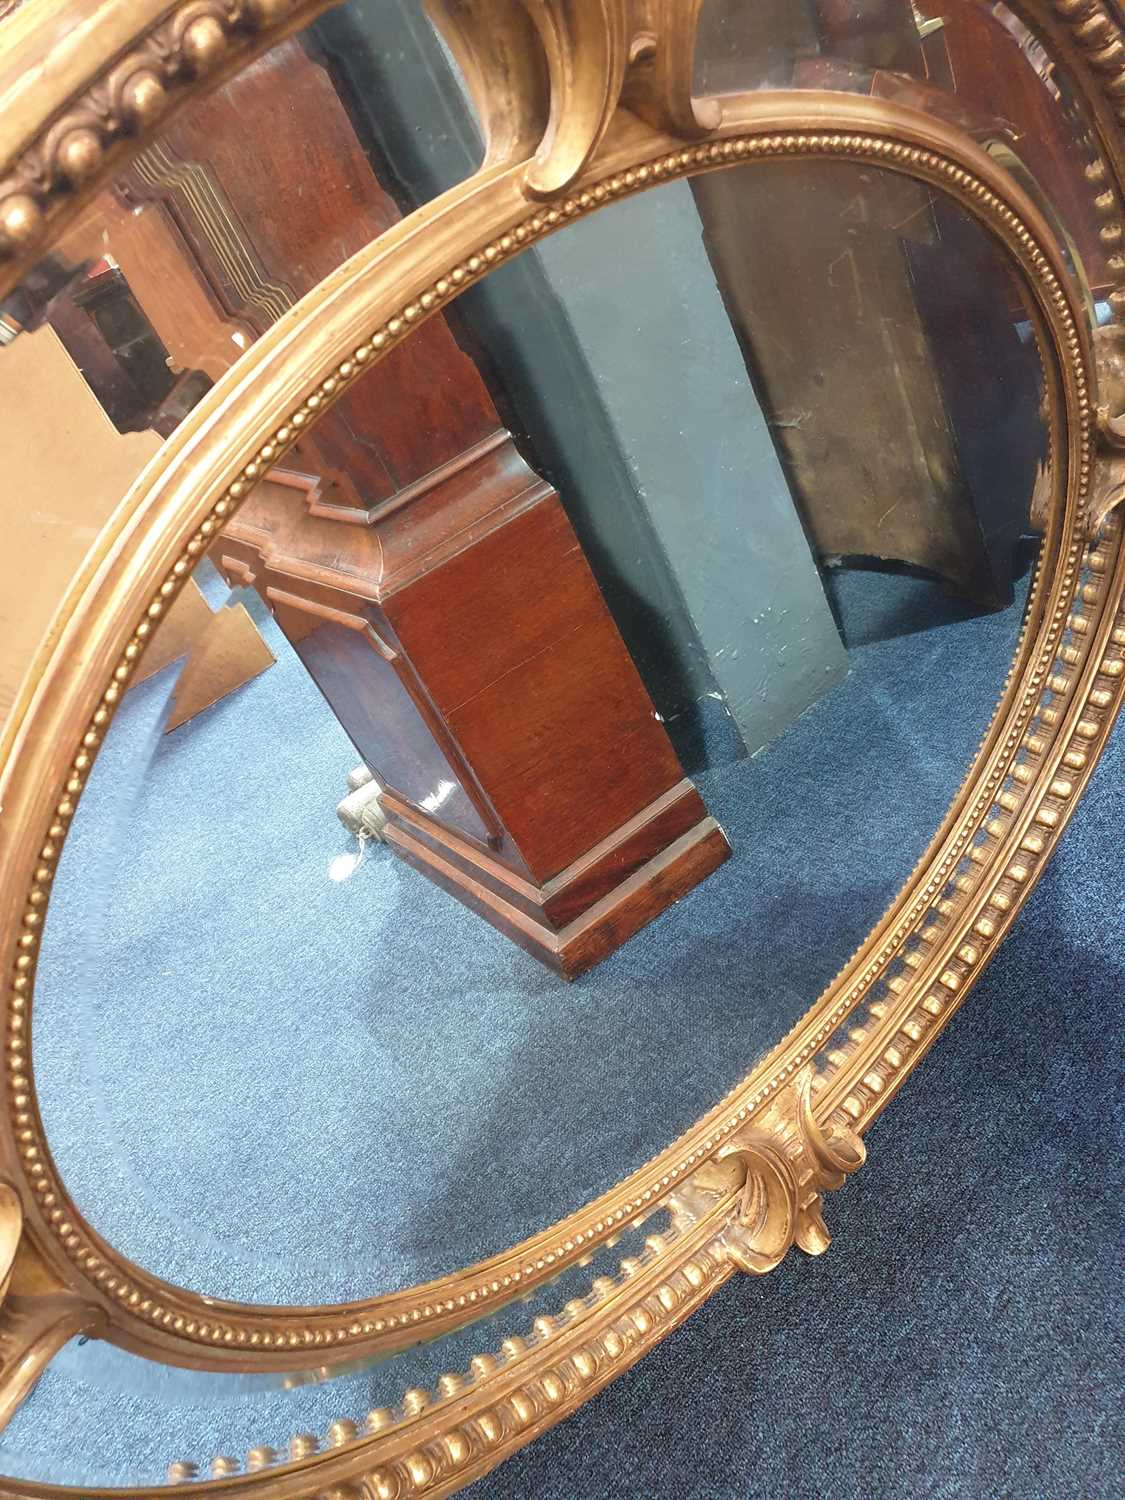 A Victorian carved wood and gilt gesso oval wall mirror with cartouch decoration and an outer border - Image 8 of 10